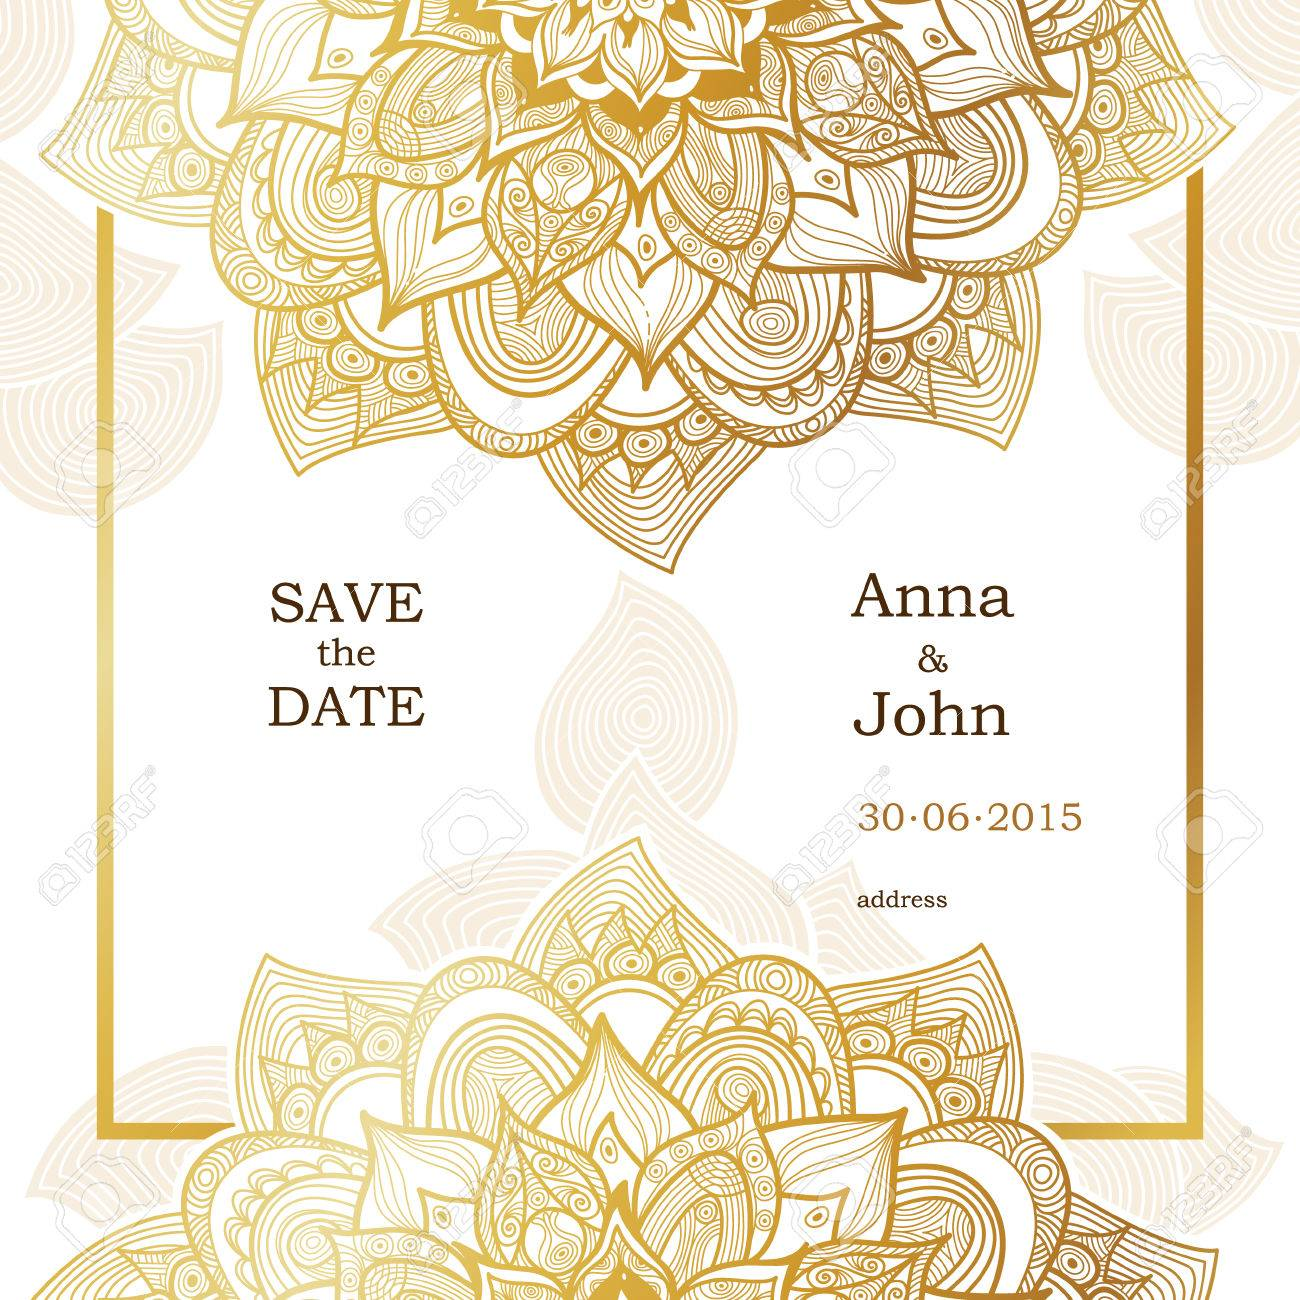 golden vintage ornate cards outline floral decor in eastern style template frame for save